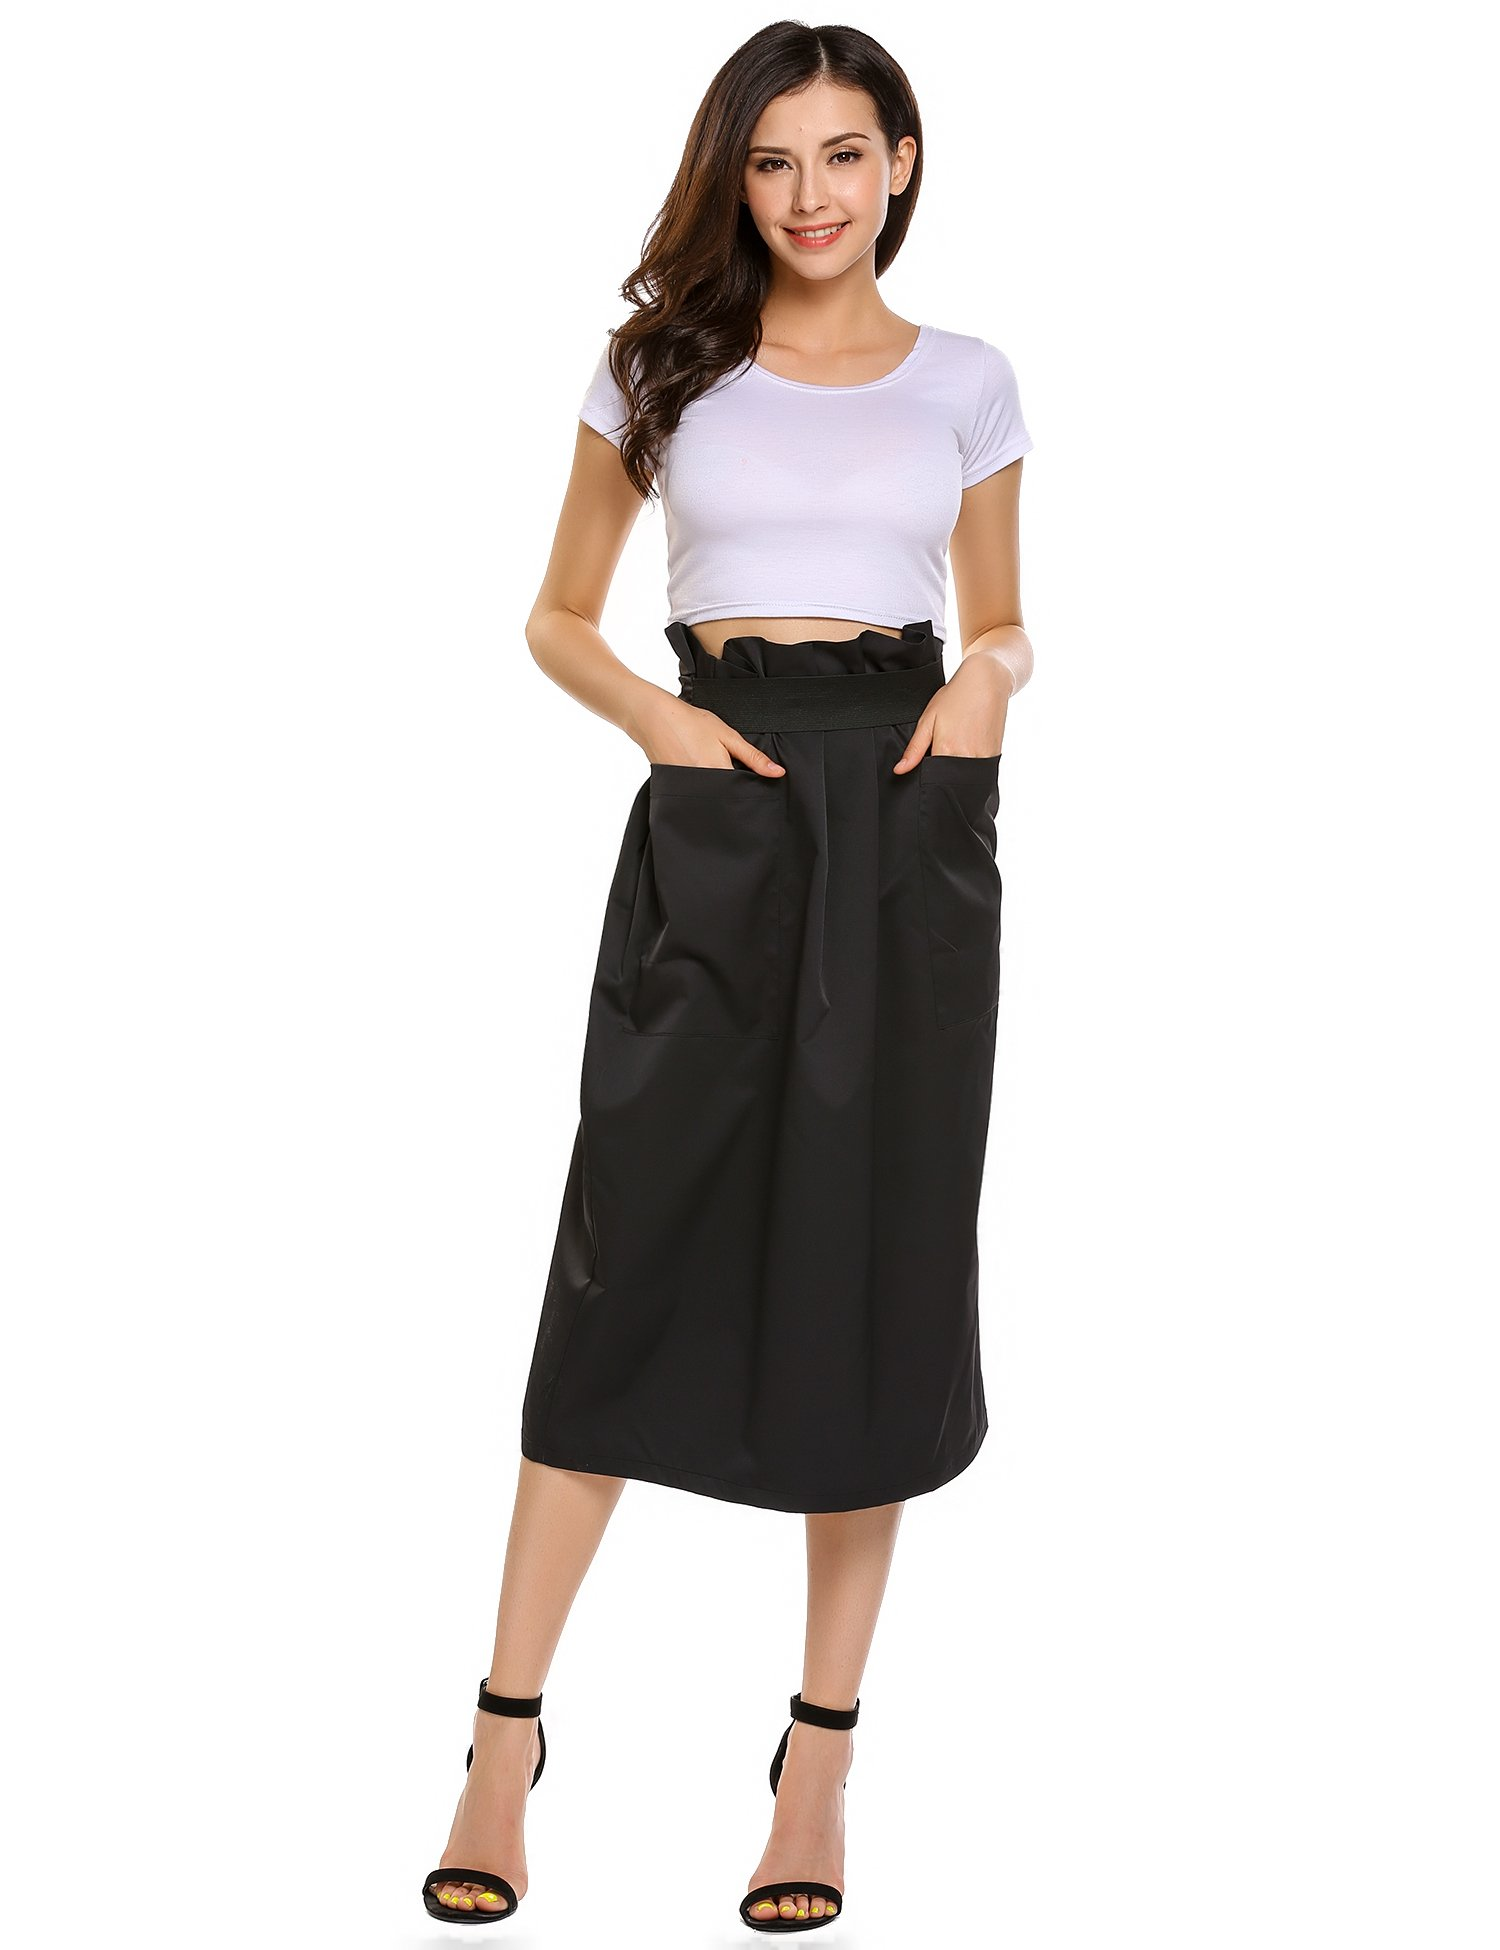 Women Casual High Waisted African A Line Maxi Long Skirt Black Small by Zeagoo (Image #2)